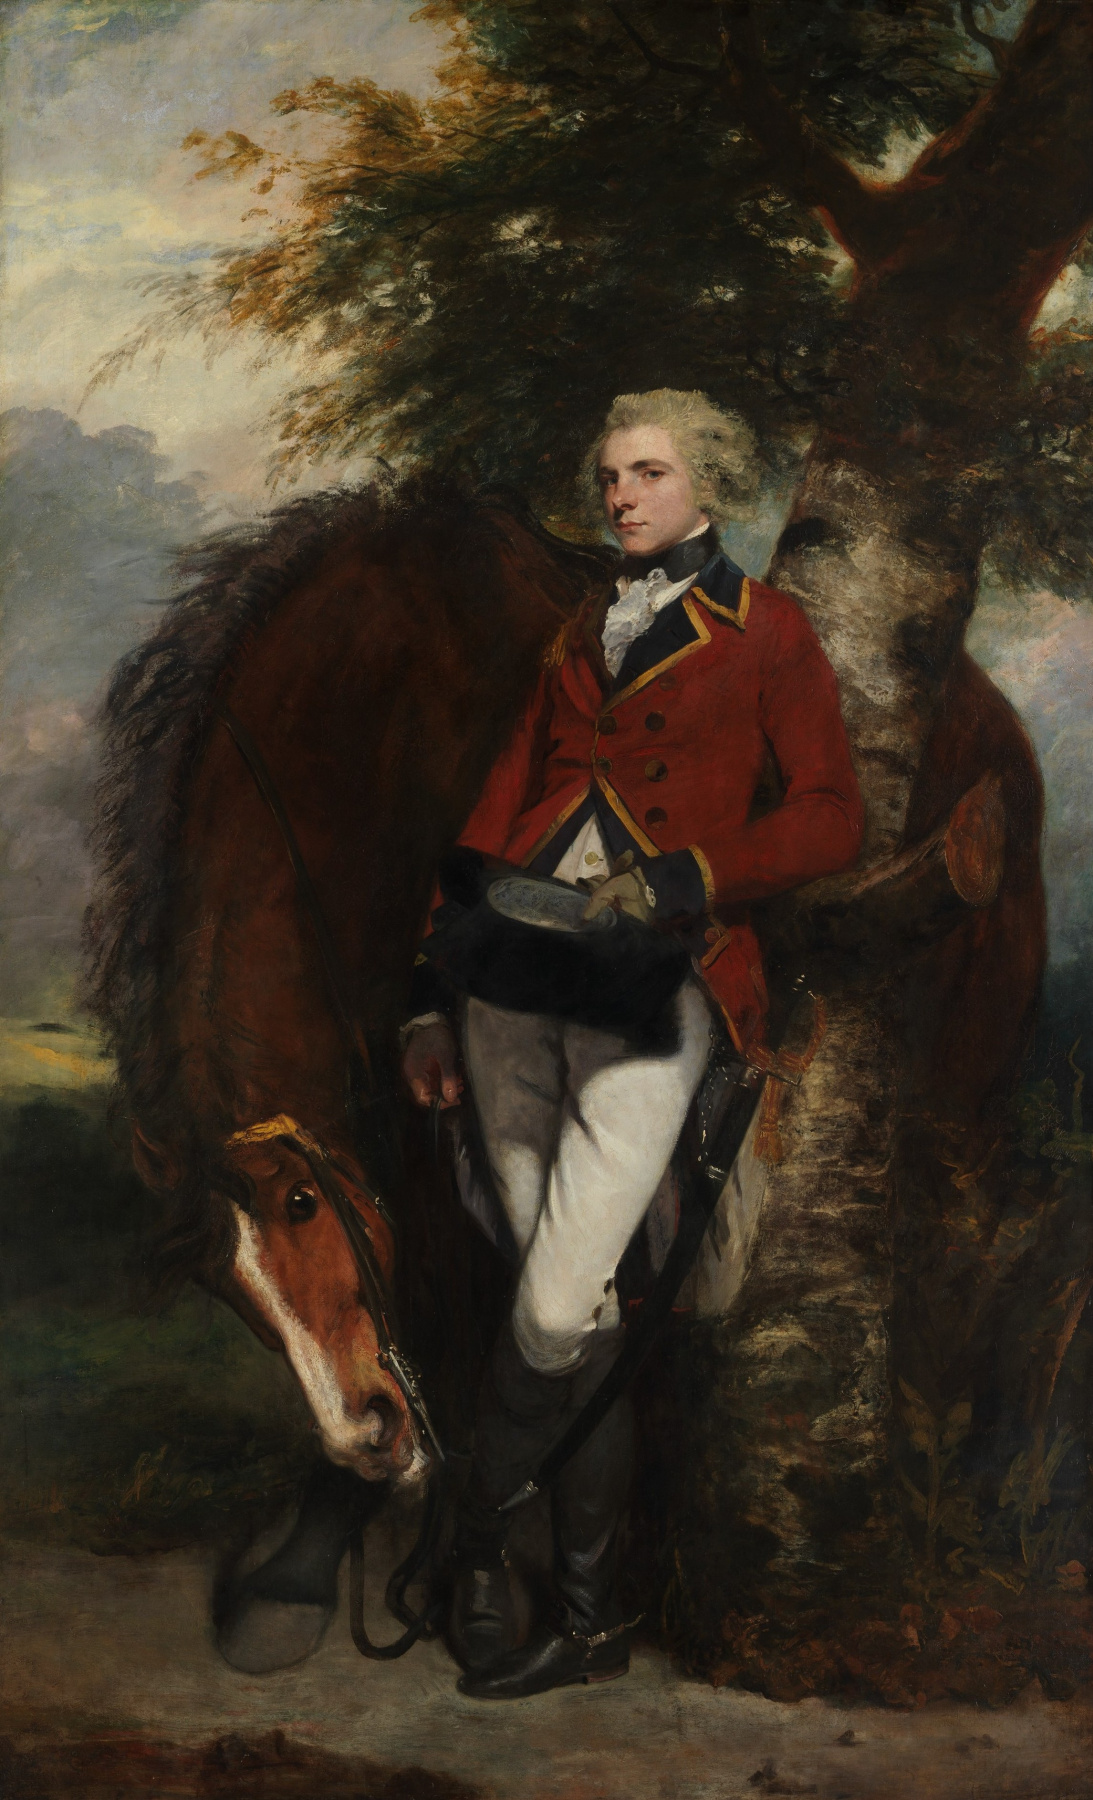 Joshua Reynolds. Portrait of Colonel George C. G. Kausmeyker